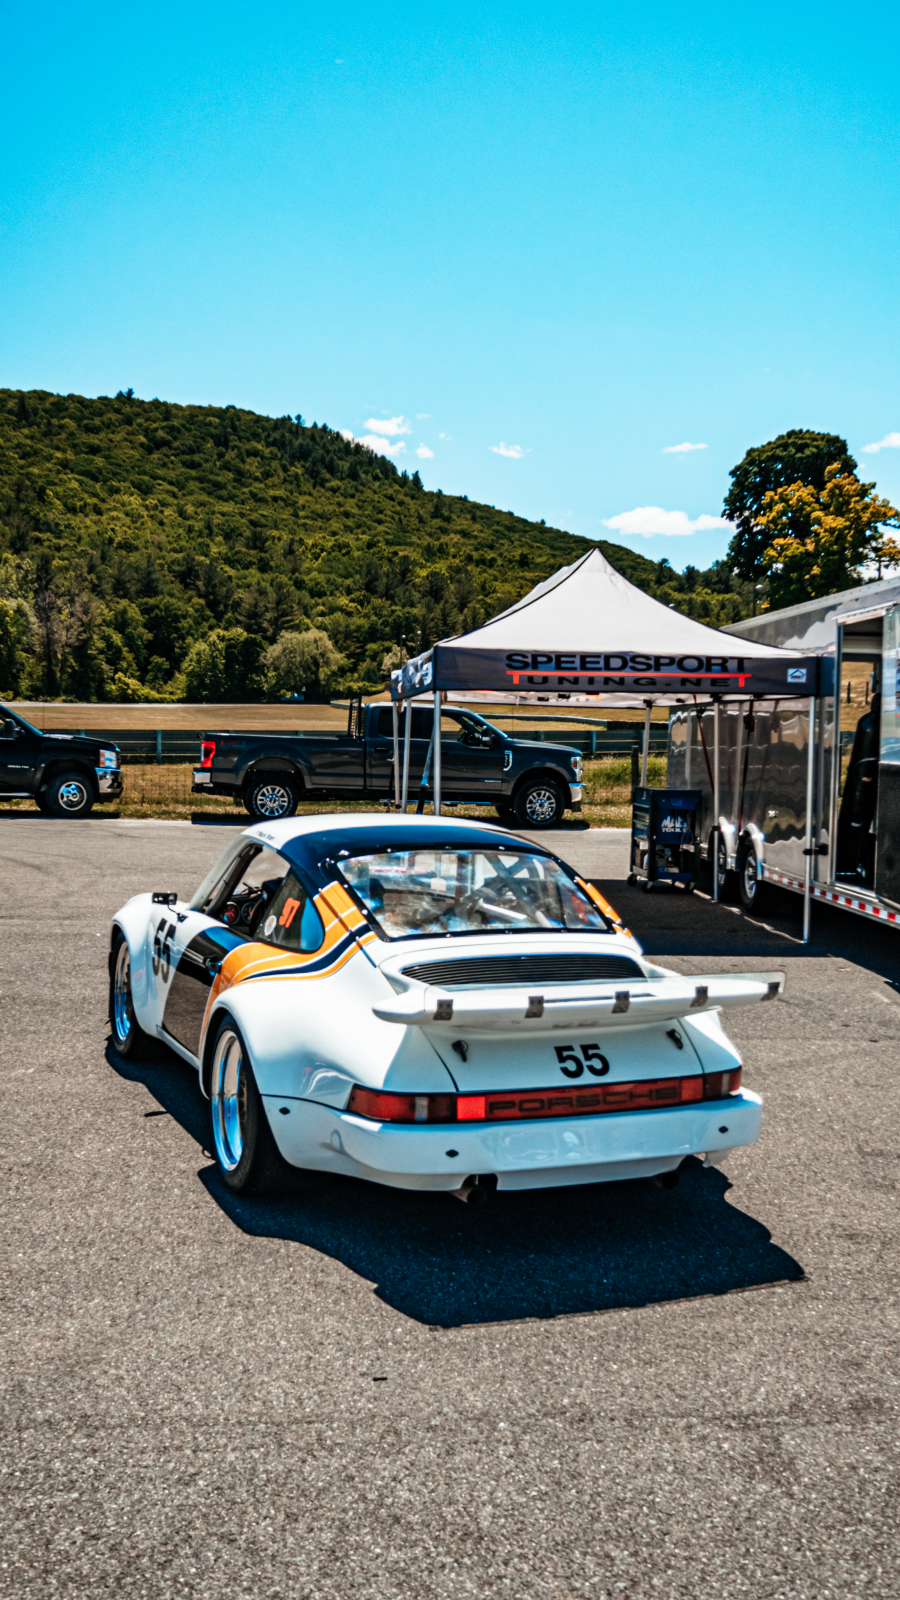 1974 Porsche 911 RSR Coupe 930 Turbo chassis Racer $obo For Sale (picture 6 of 6)